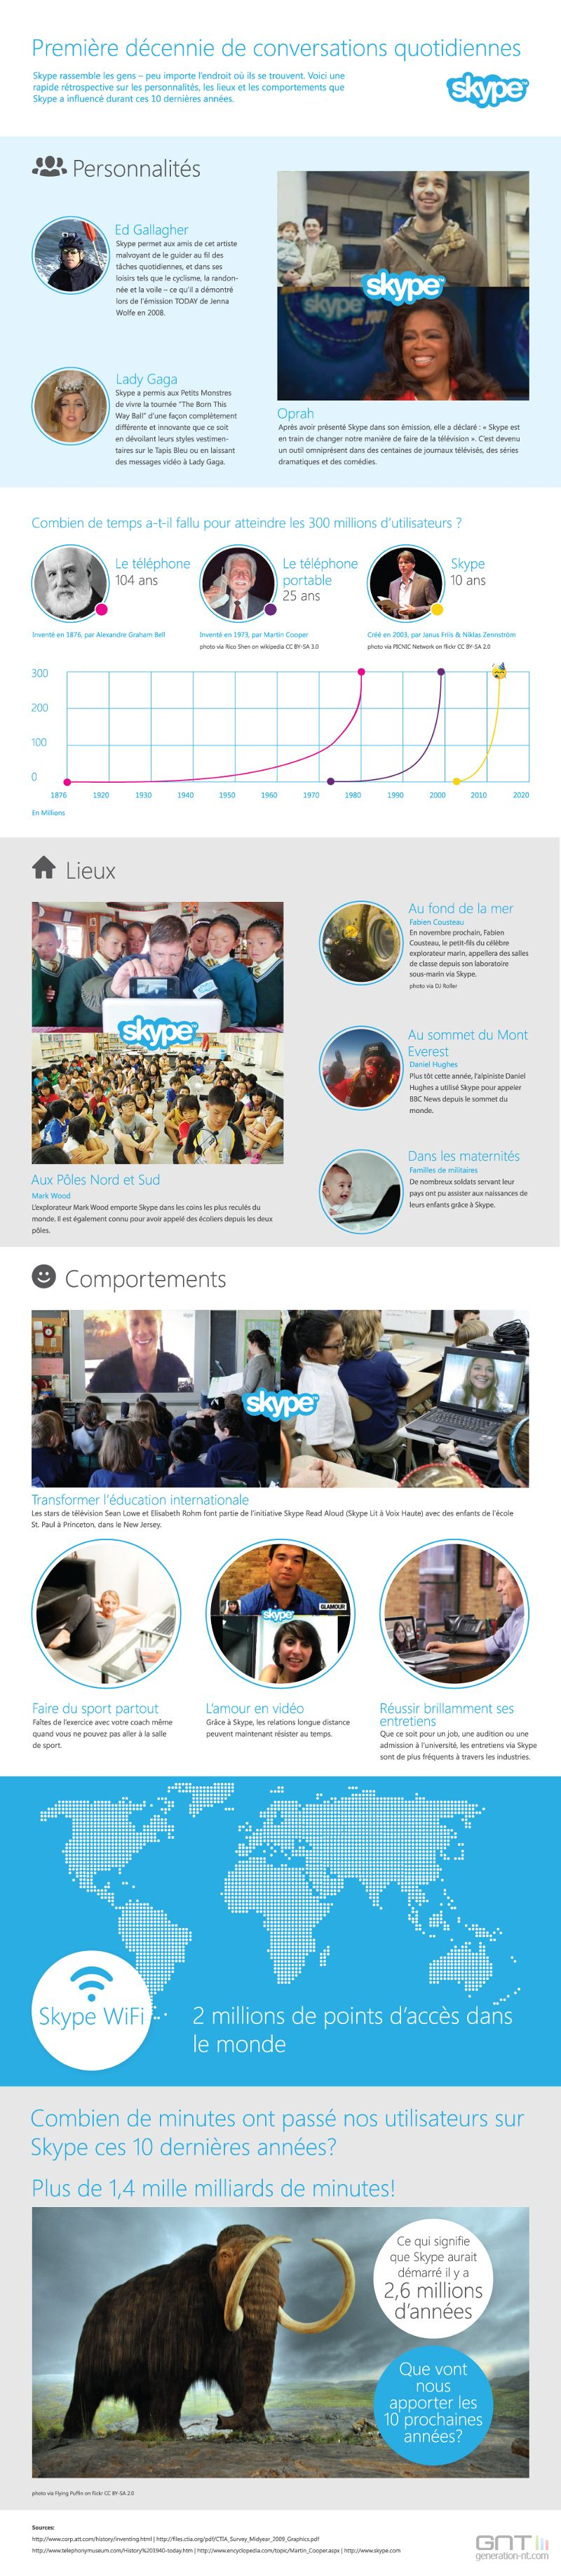 Infographie Skype 10 ans